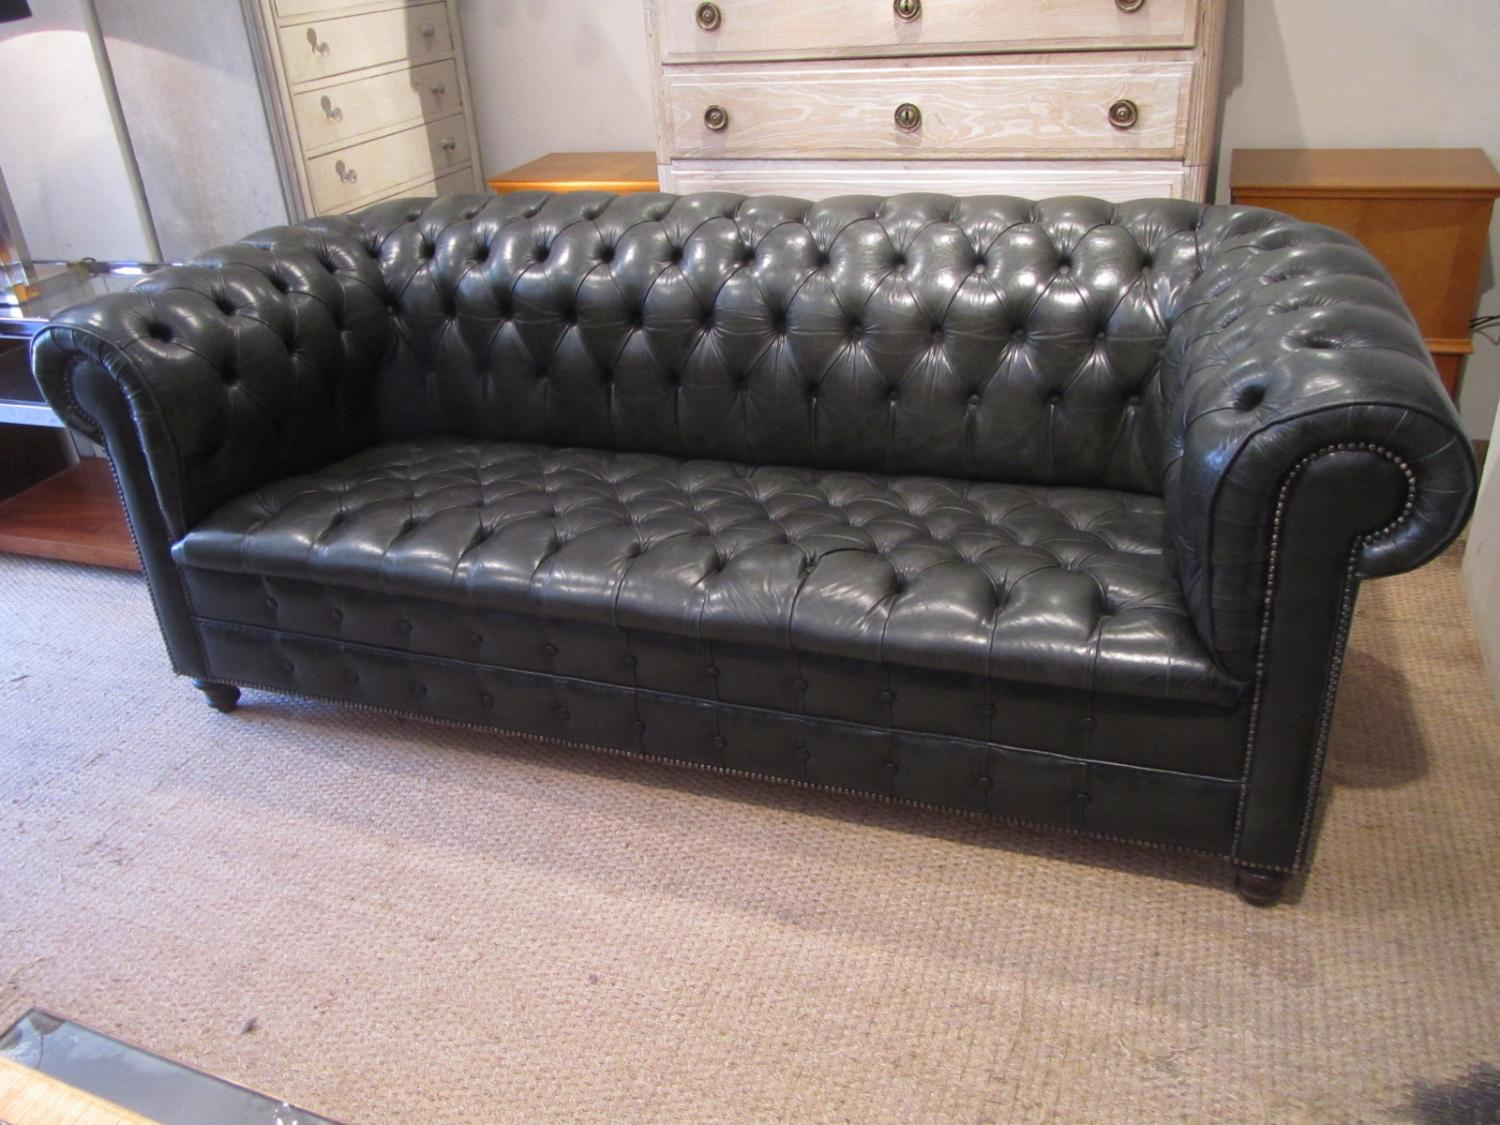 A fully buttoned leather chesterfield sofa